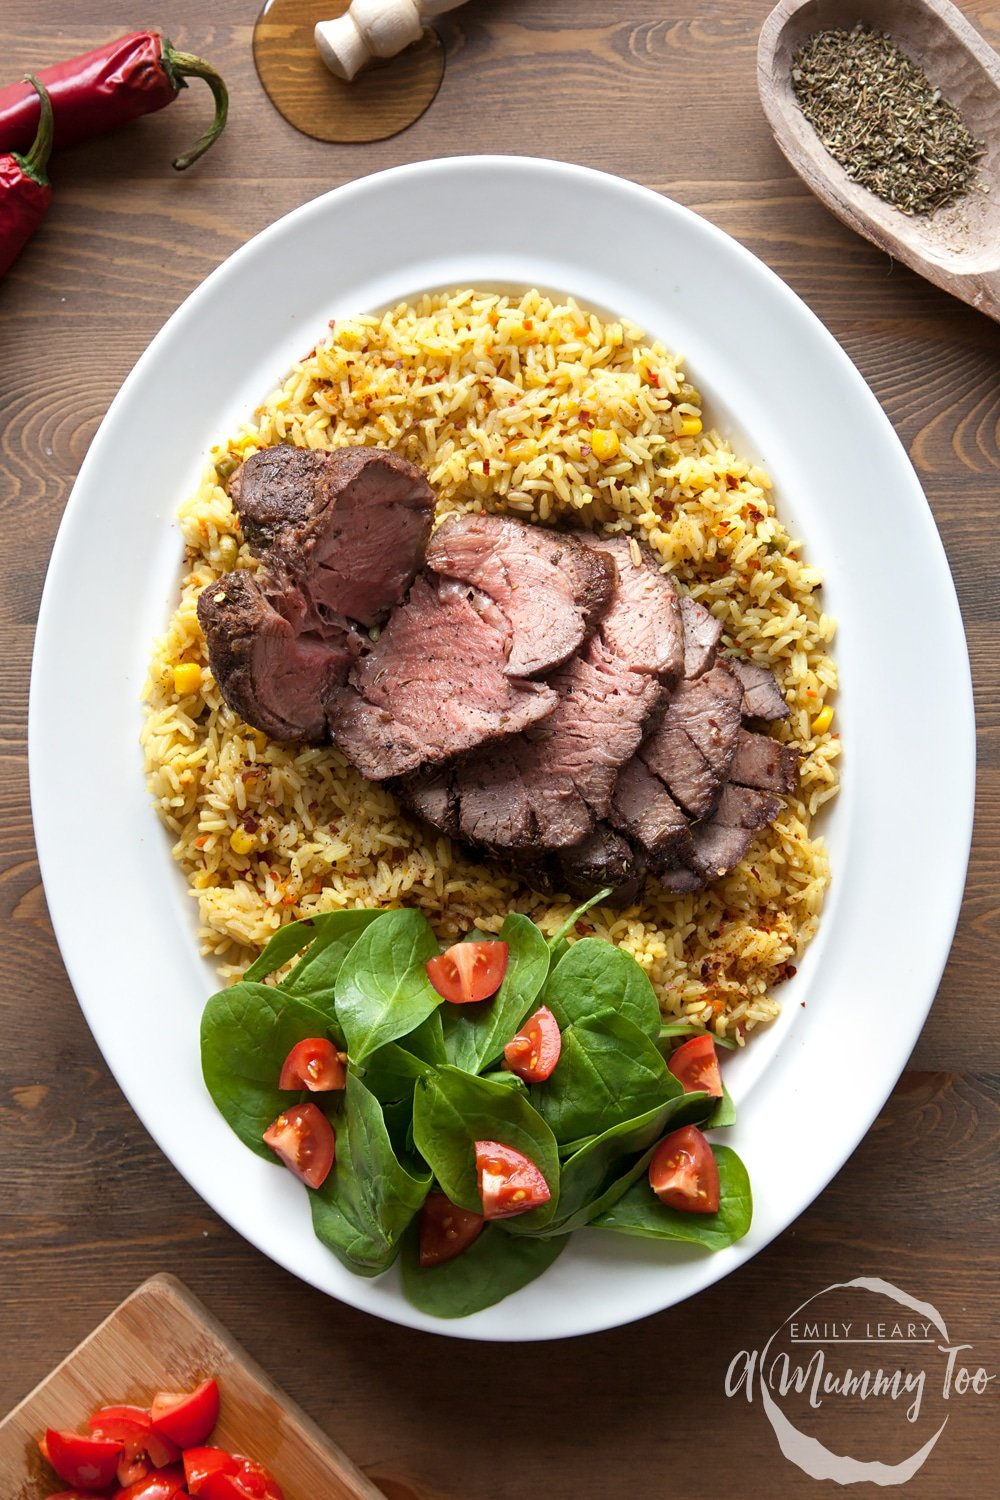 Piri piri beef mini roast - a perfect mid-week roast, served with seasoned rice and side salad